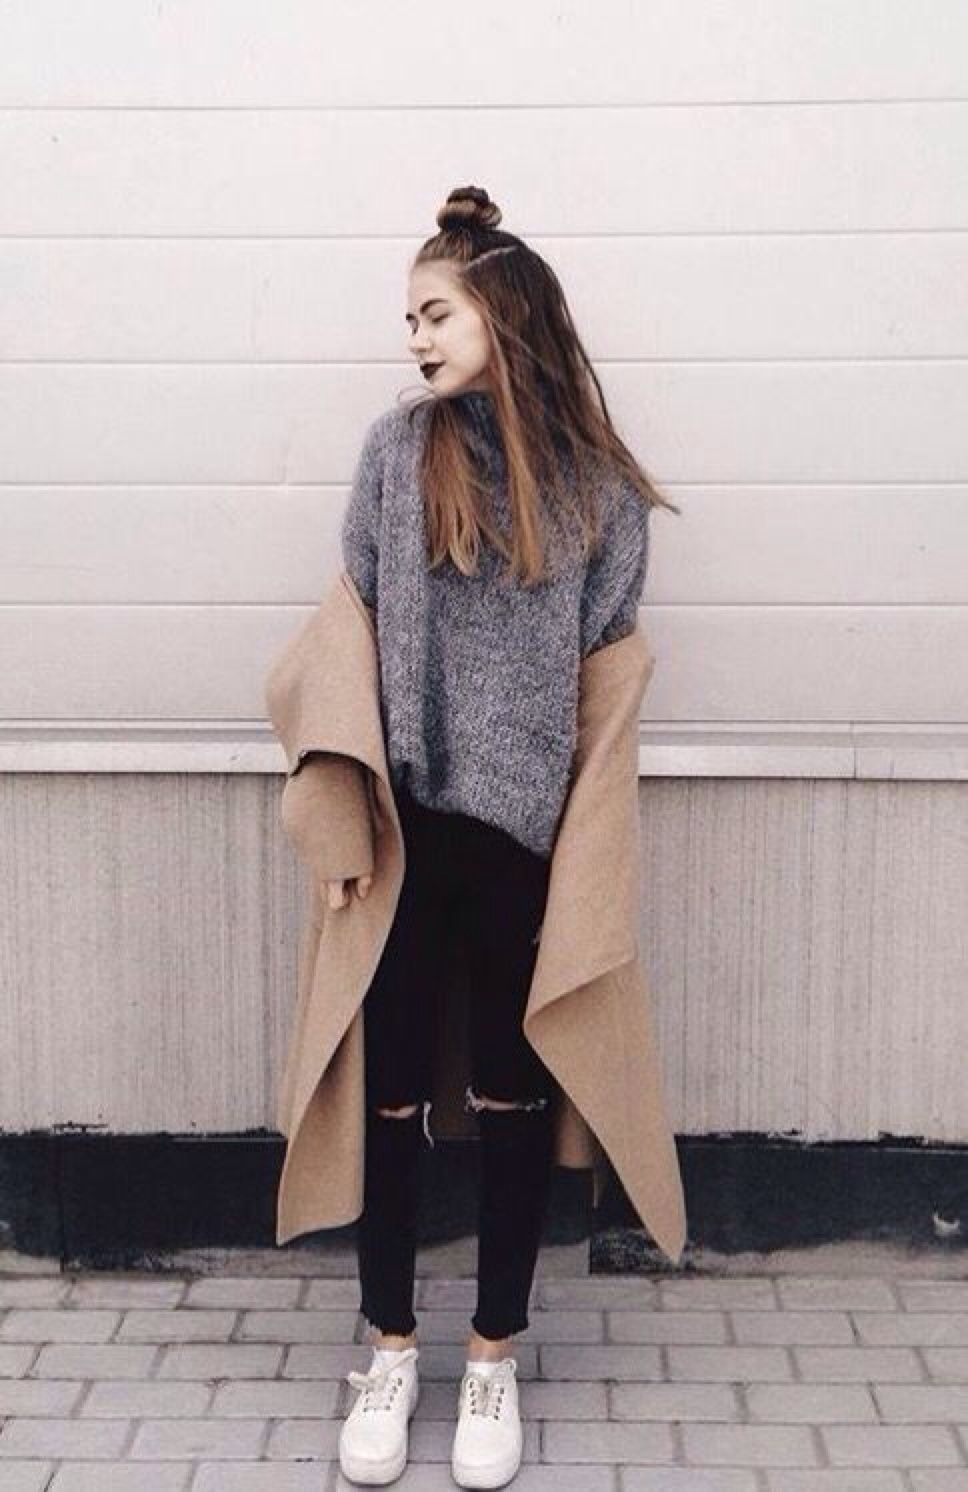 Grunge Street Outfit For Winter Pictures Photos and Images for Facebook Tumblr Pinterest ...